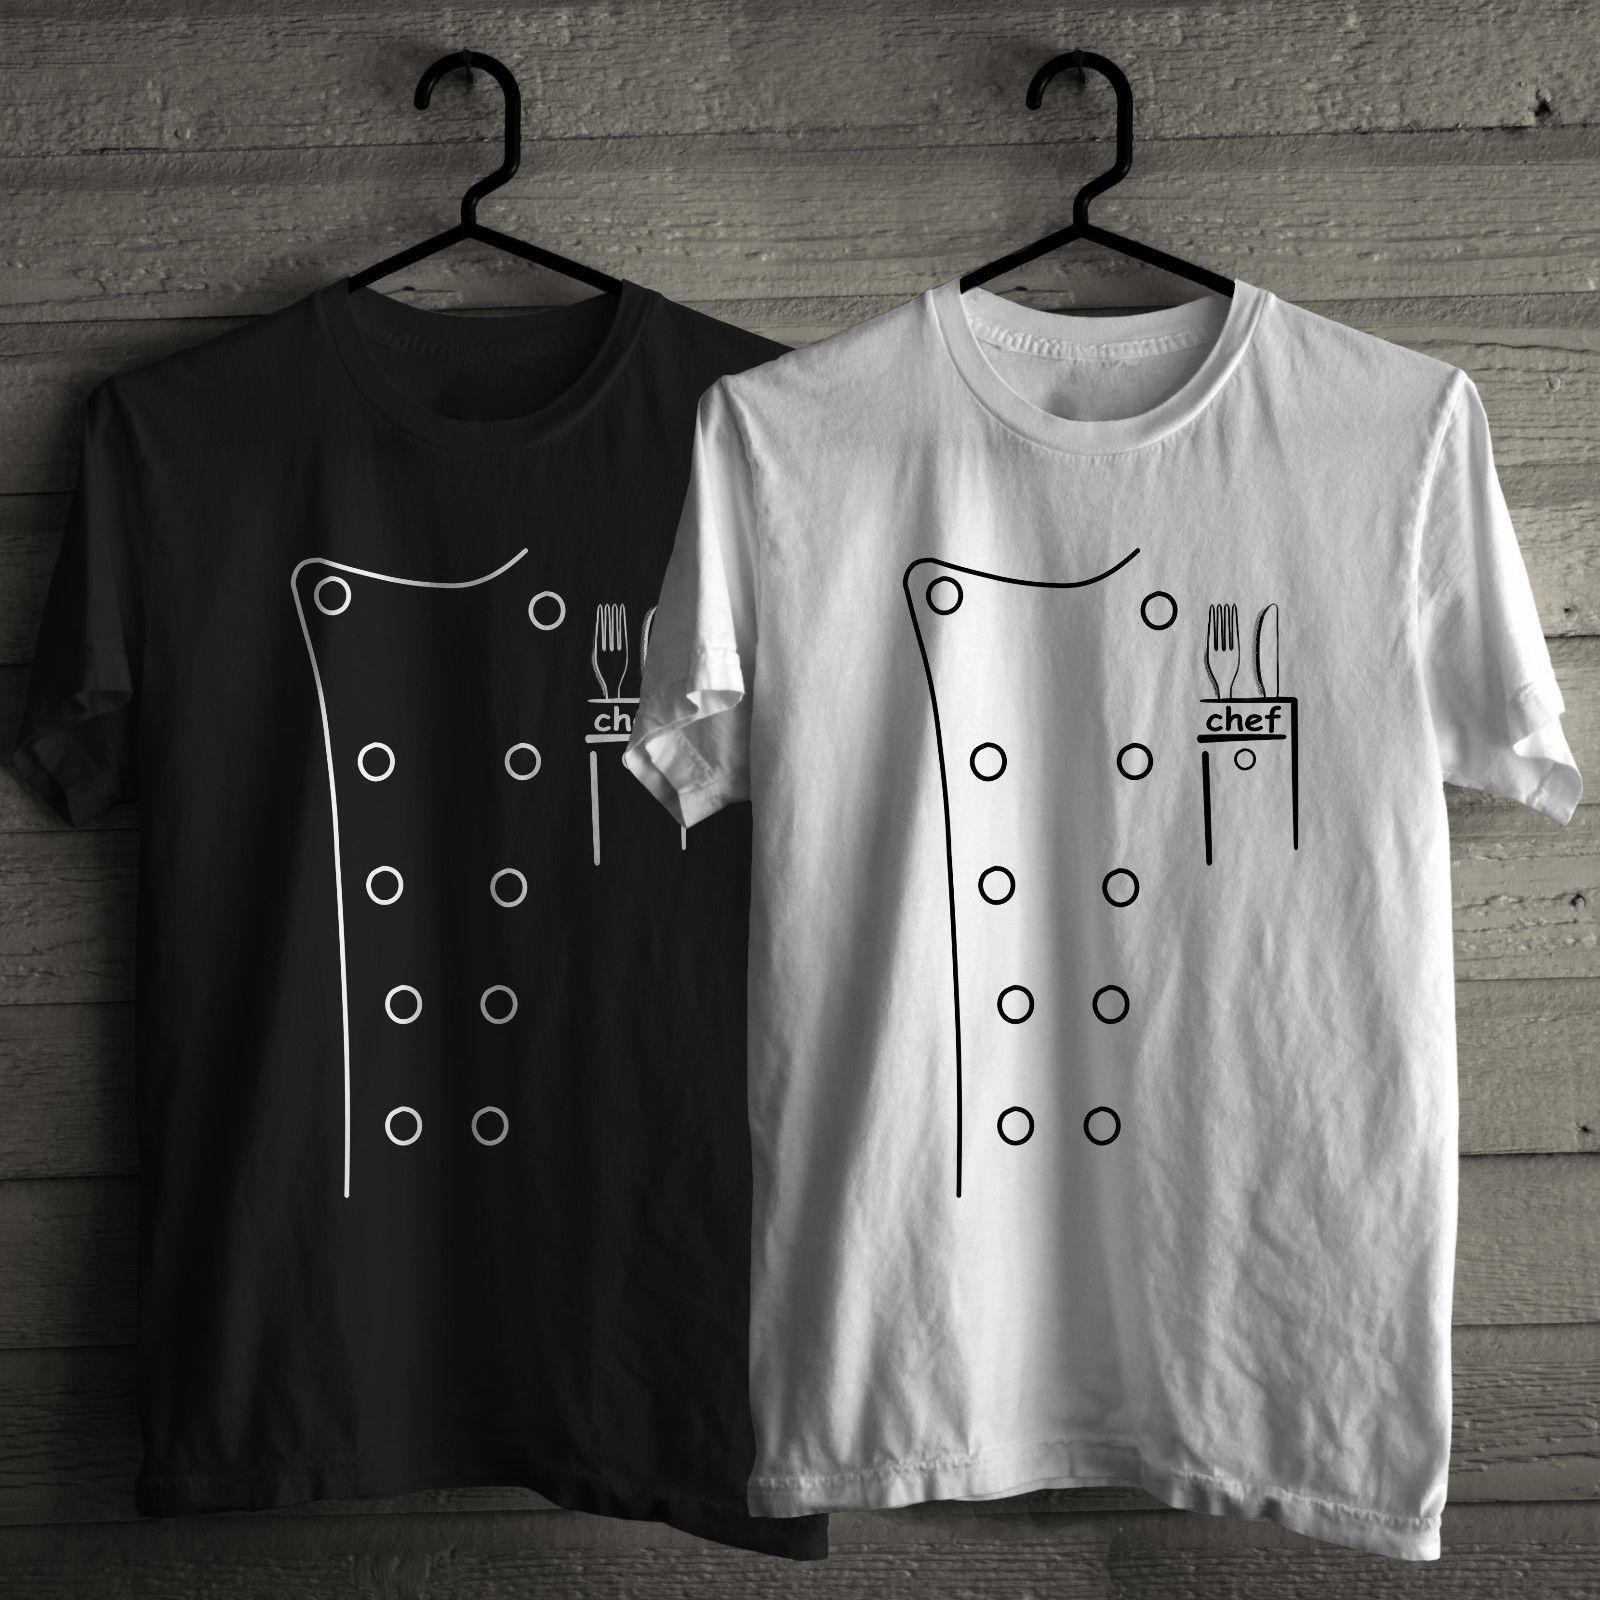 f91c1af7 Mens T Shirts Fashion 2018 Chef Funny T Shirt, New Black Or Whites Short Sleeve  Tee Mens Tee Shirts Rude T Shirts From Down2lift, $11.01  DHgate.Com